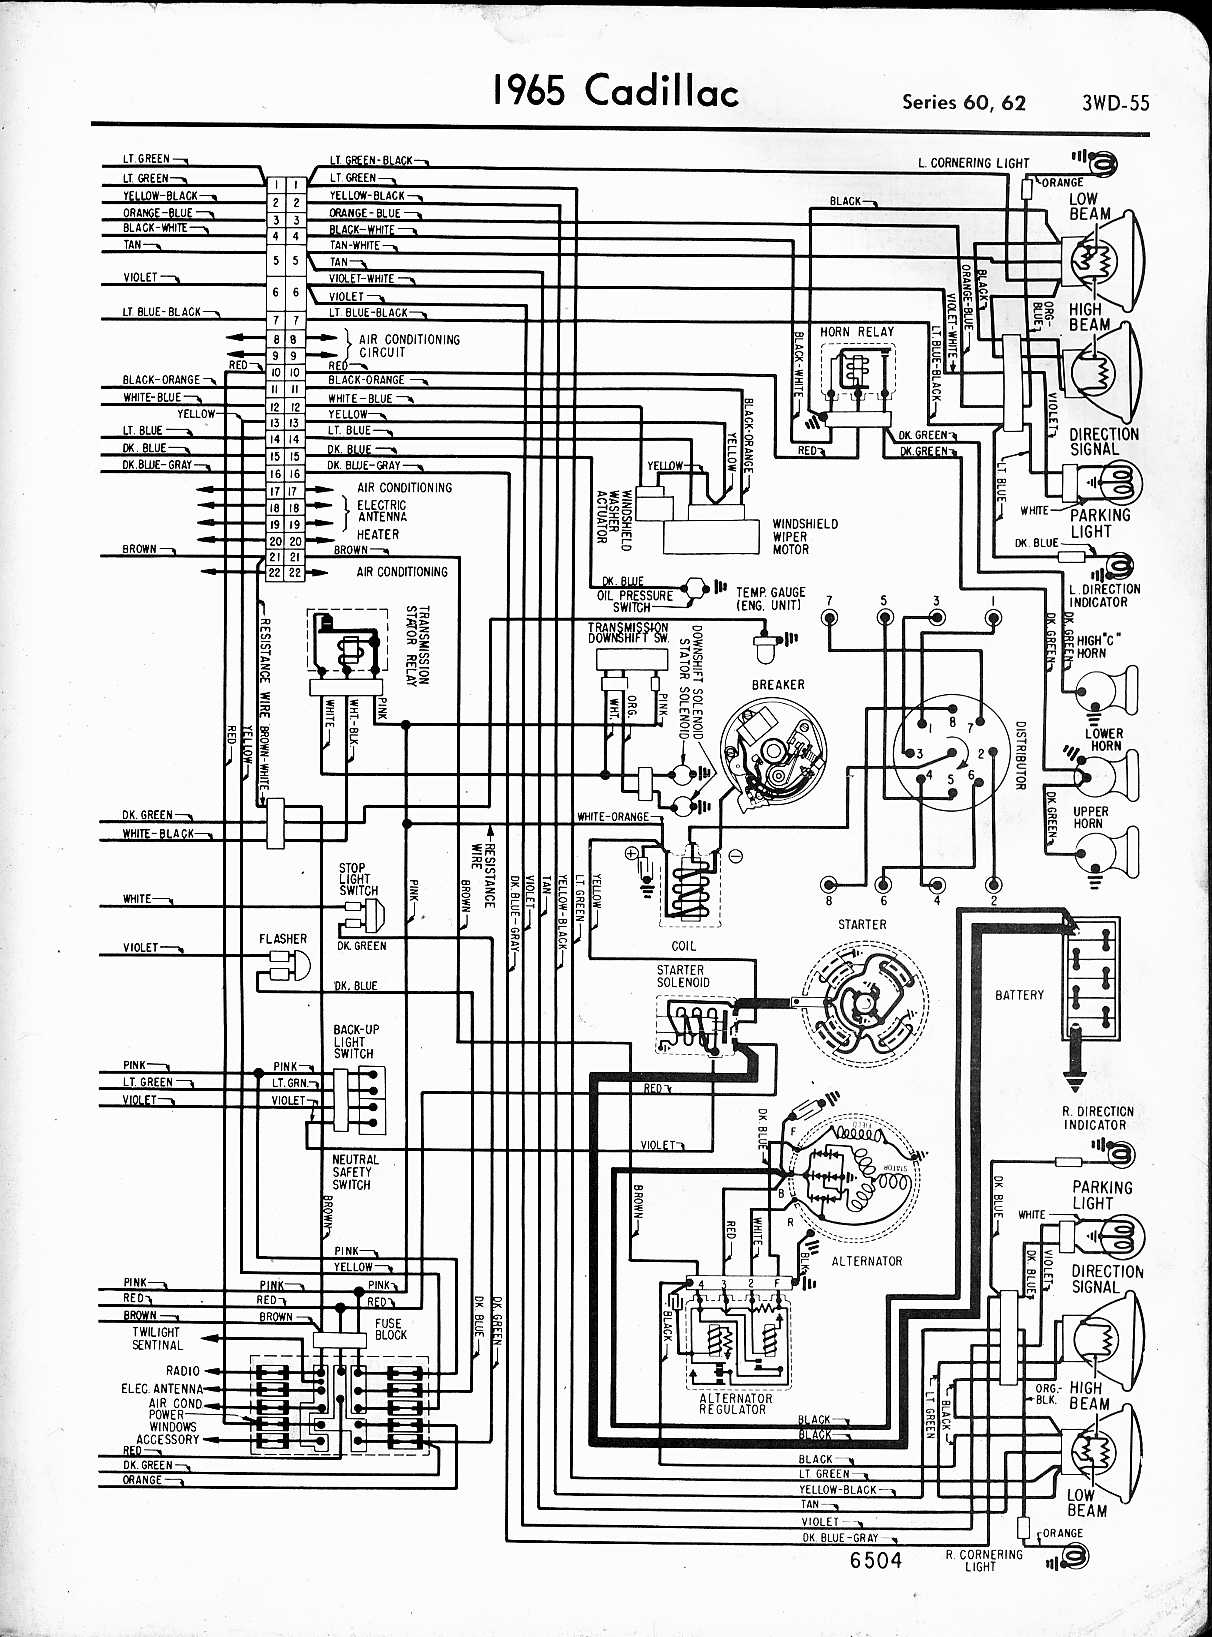 Cadillac Wiring Diagrams 1957 1965 Alternator Engine Diagram Series 6062 Right